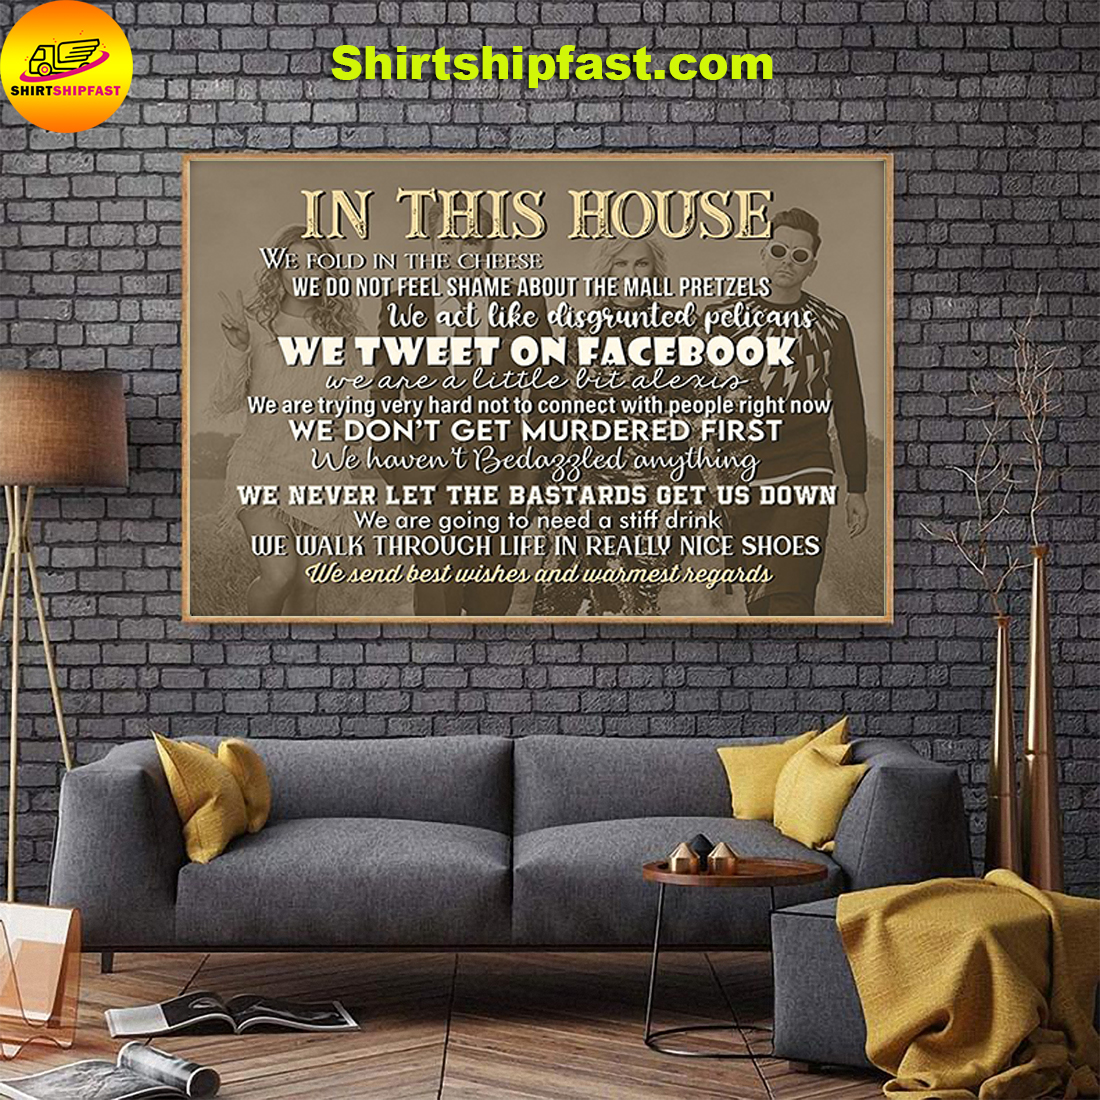 In this house we send best wishes and warmest regards poster - Picture 1